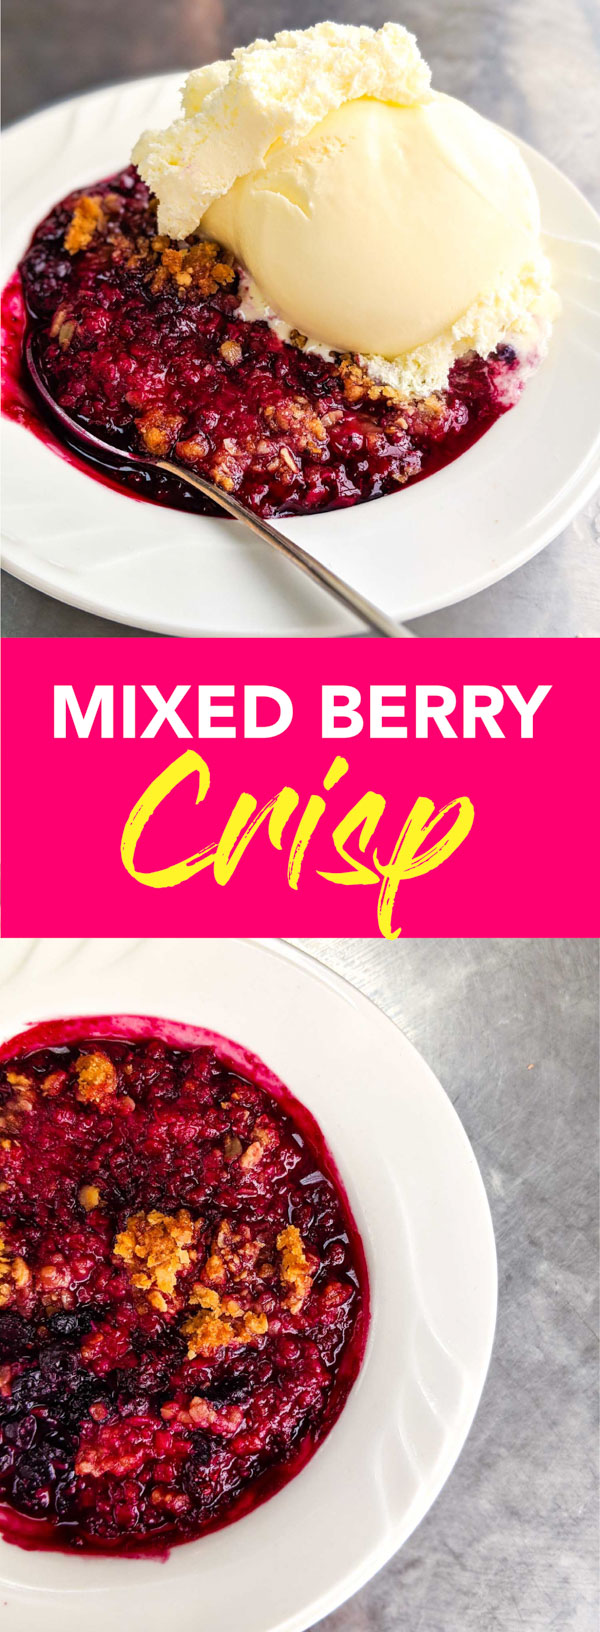 Mixed berry crisp recipe in white bowl on silver background, a classic Nova Scotian dessert.